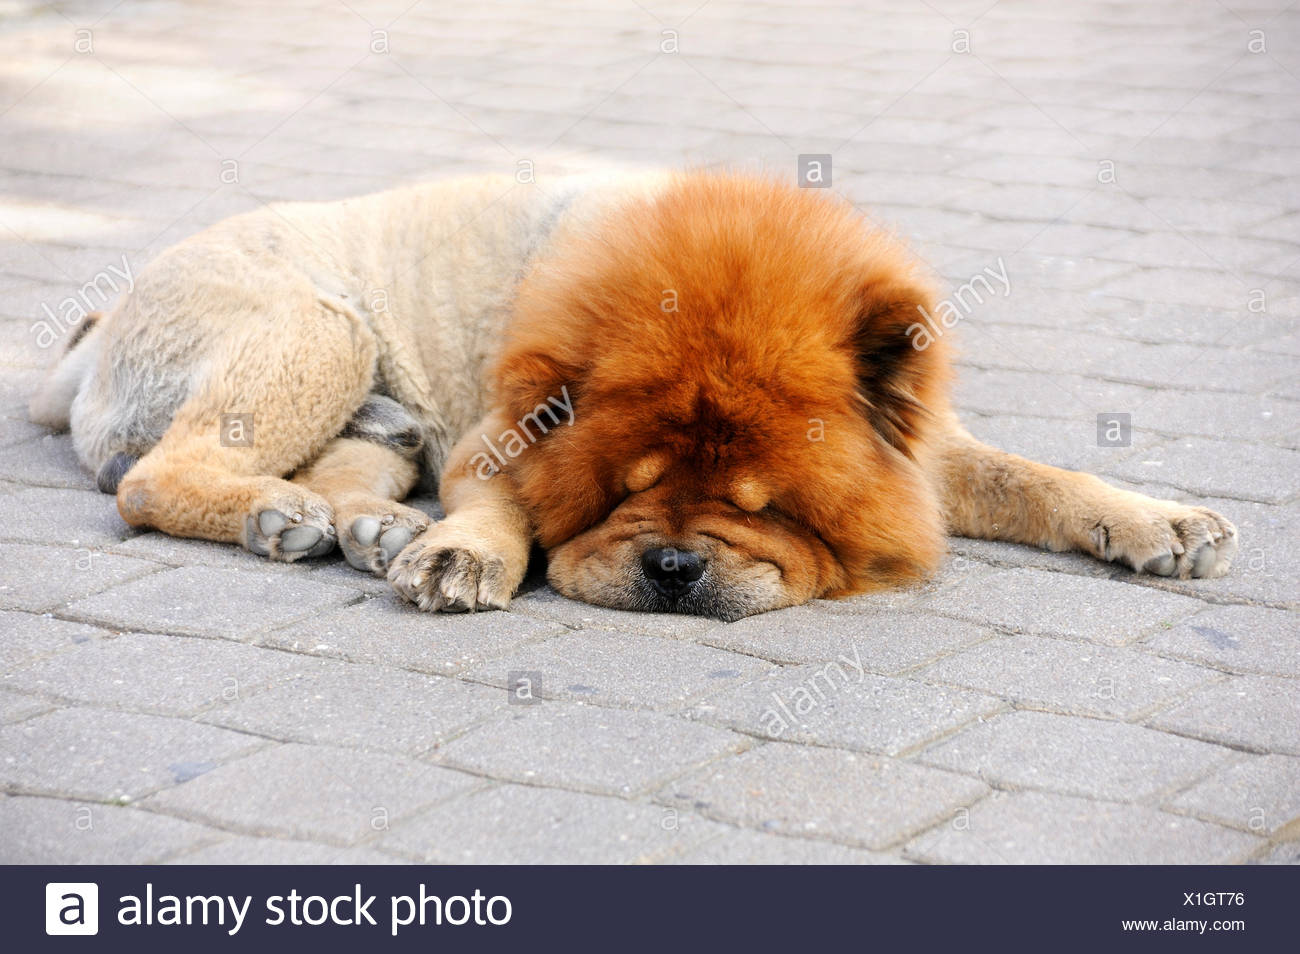 Clipped Chow-Chow sleeping on a pavement, in hot weather Stock Photo